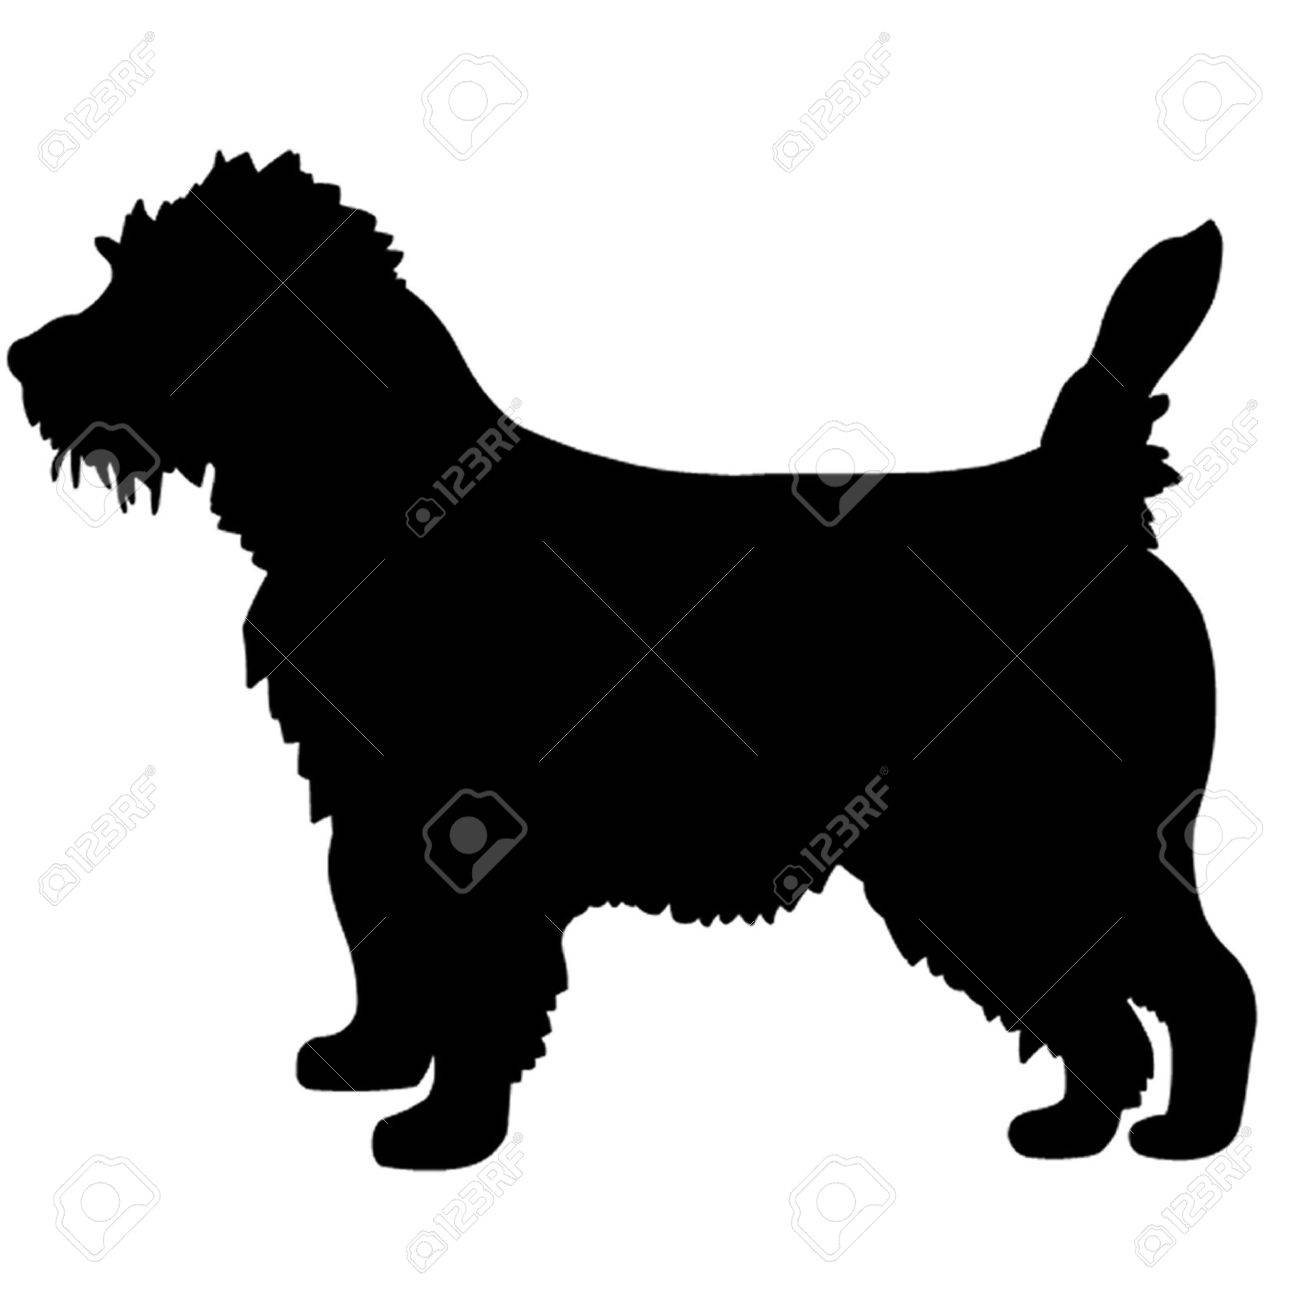 Cairn Terrier Dog Royalty Free Cliparts Vectors And Stock Illustration Image 37742846